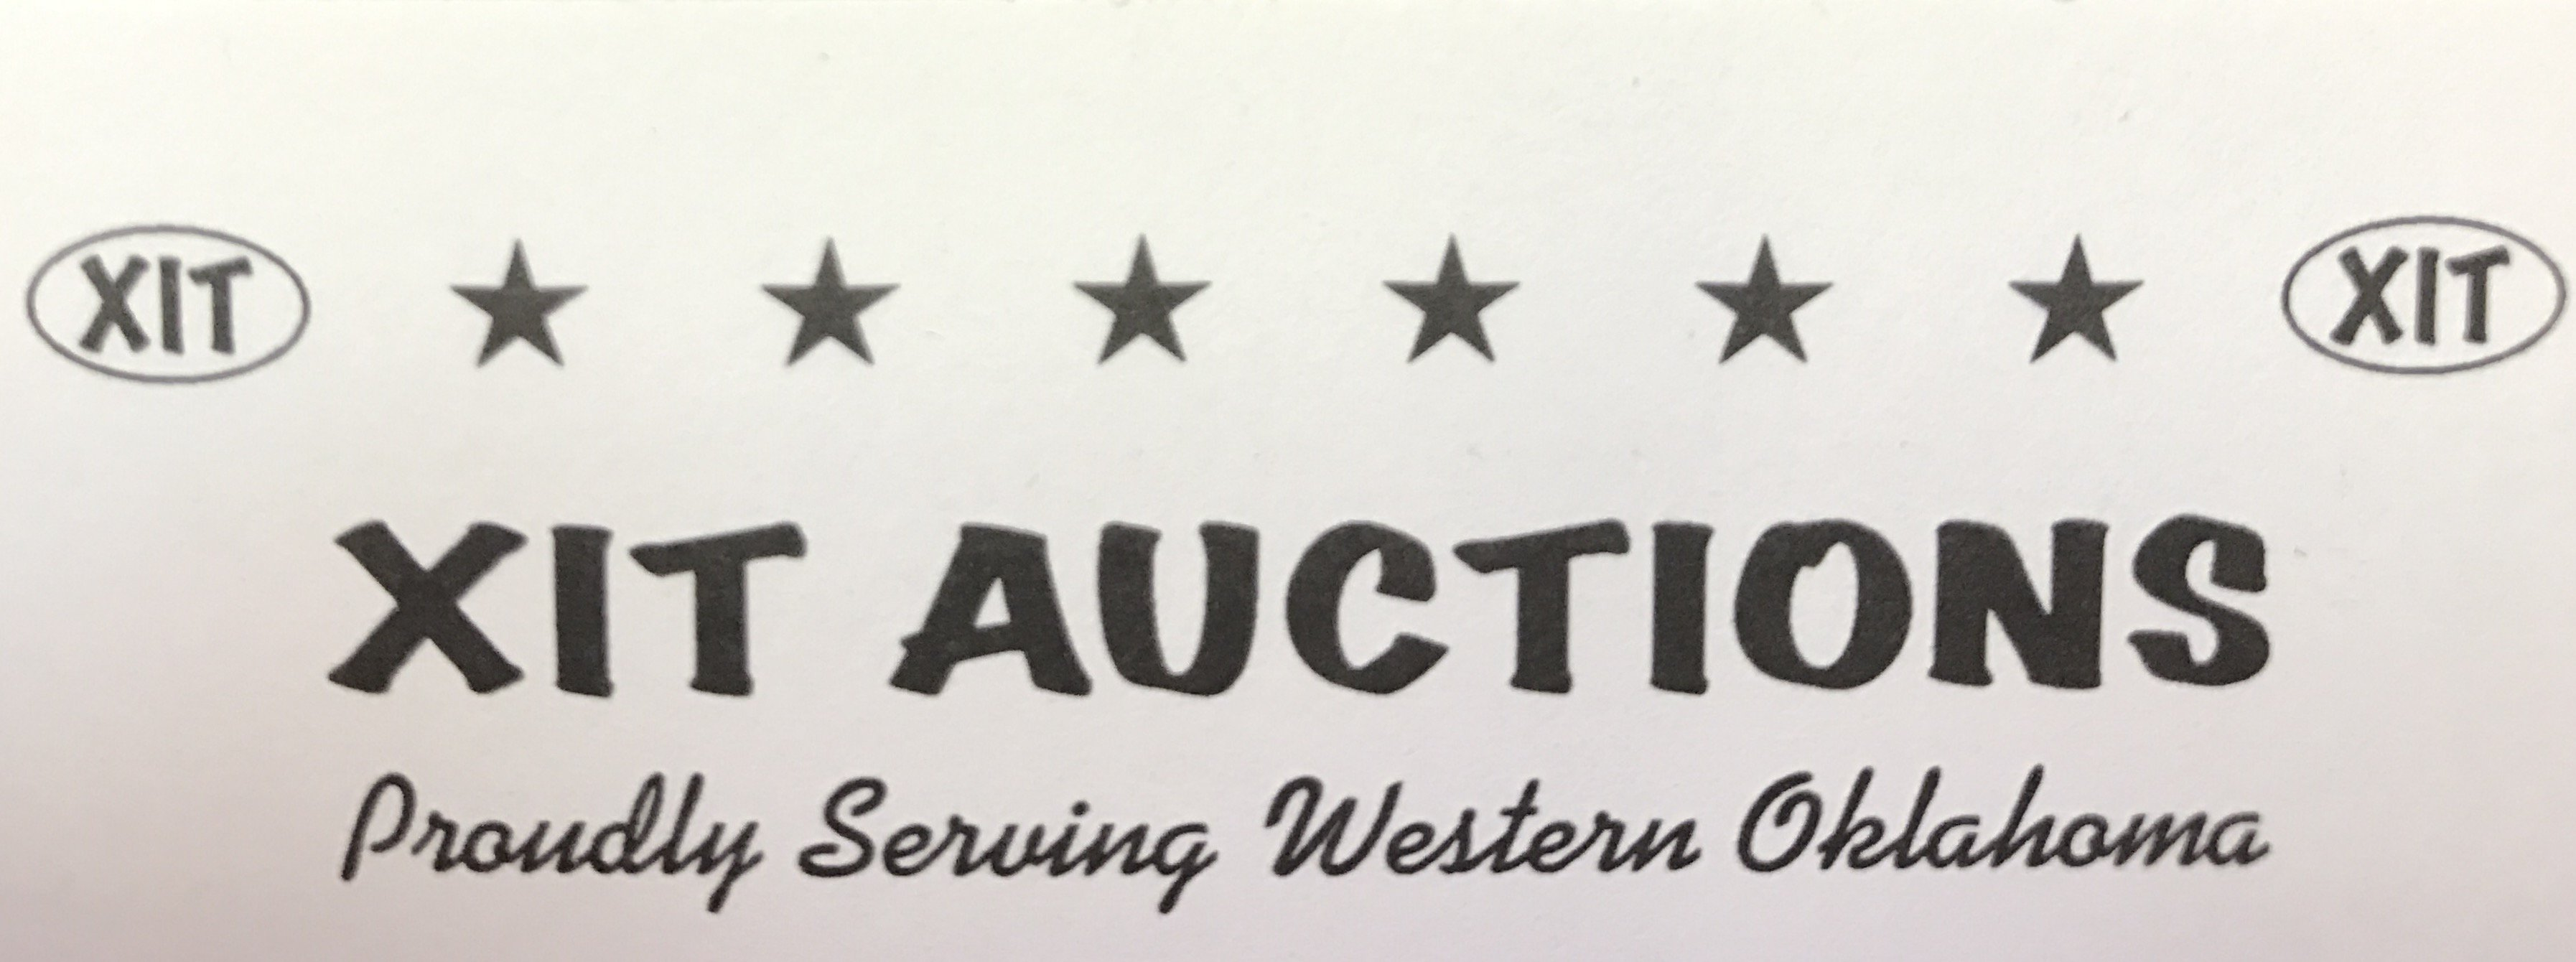 Xit Auctions, LLC